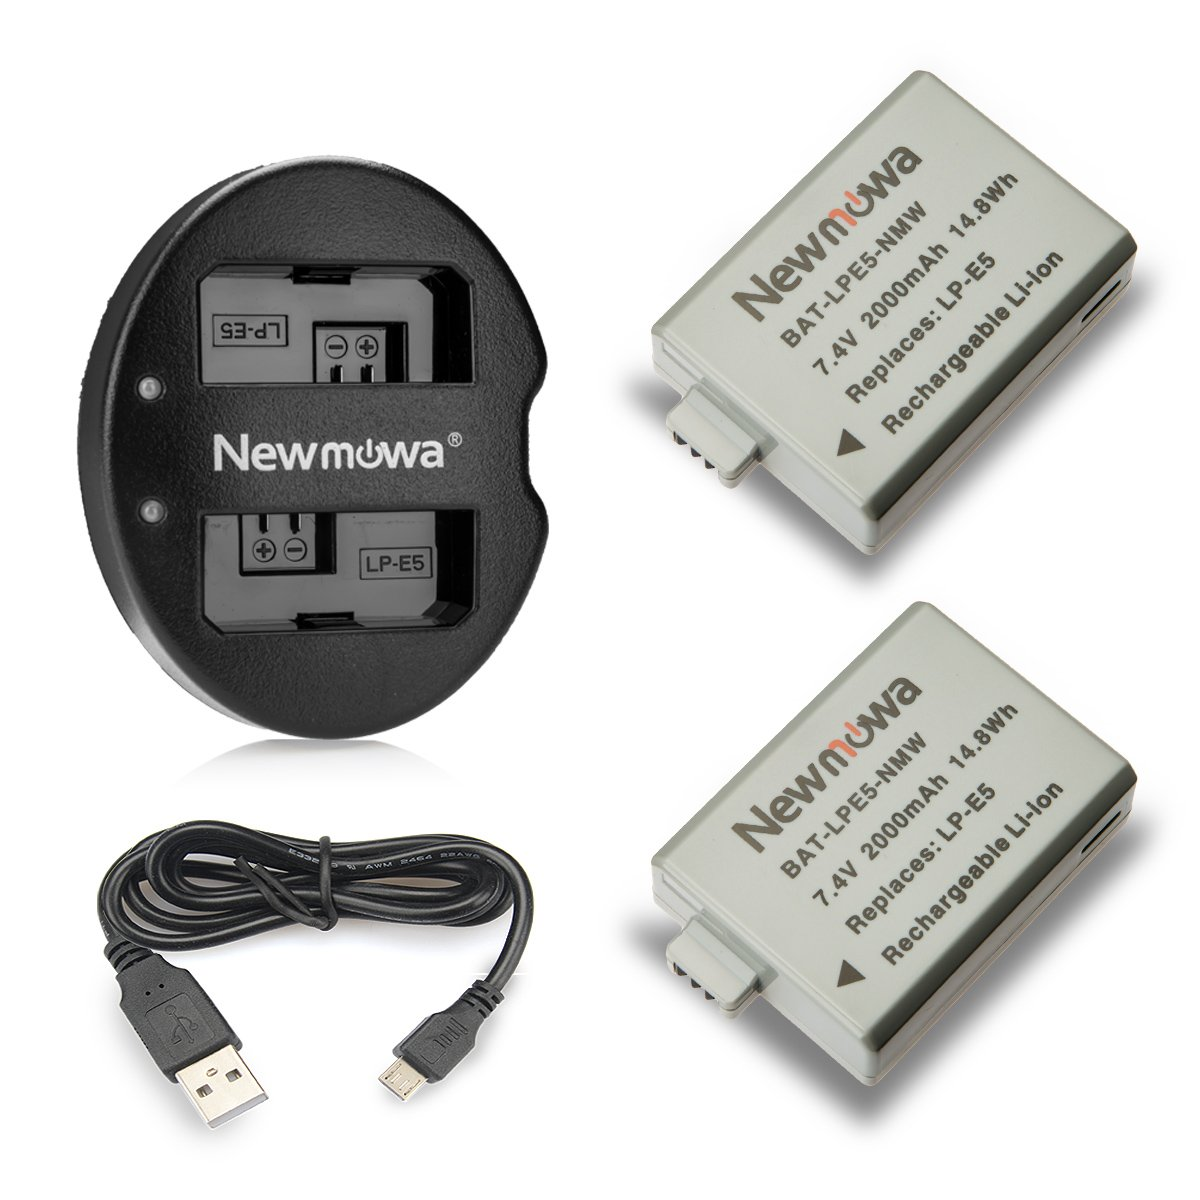 Newmowa LP-E5 Battery (2-Pack) and Dual USB Charger for CanonLP-E5 and Canon EOS Rebel XS, Rebel T1i, Rebel XSi, 1000D, 500D, 450D, Kiss X3, Kiss X2, Kiss F